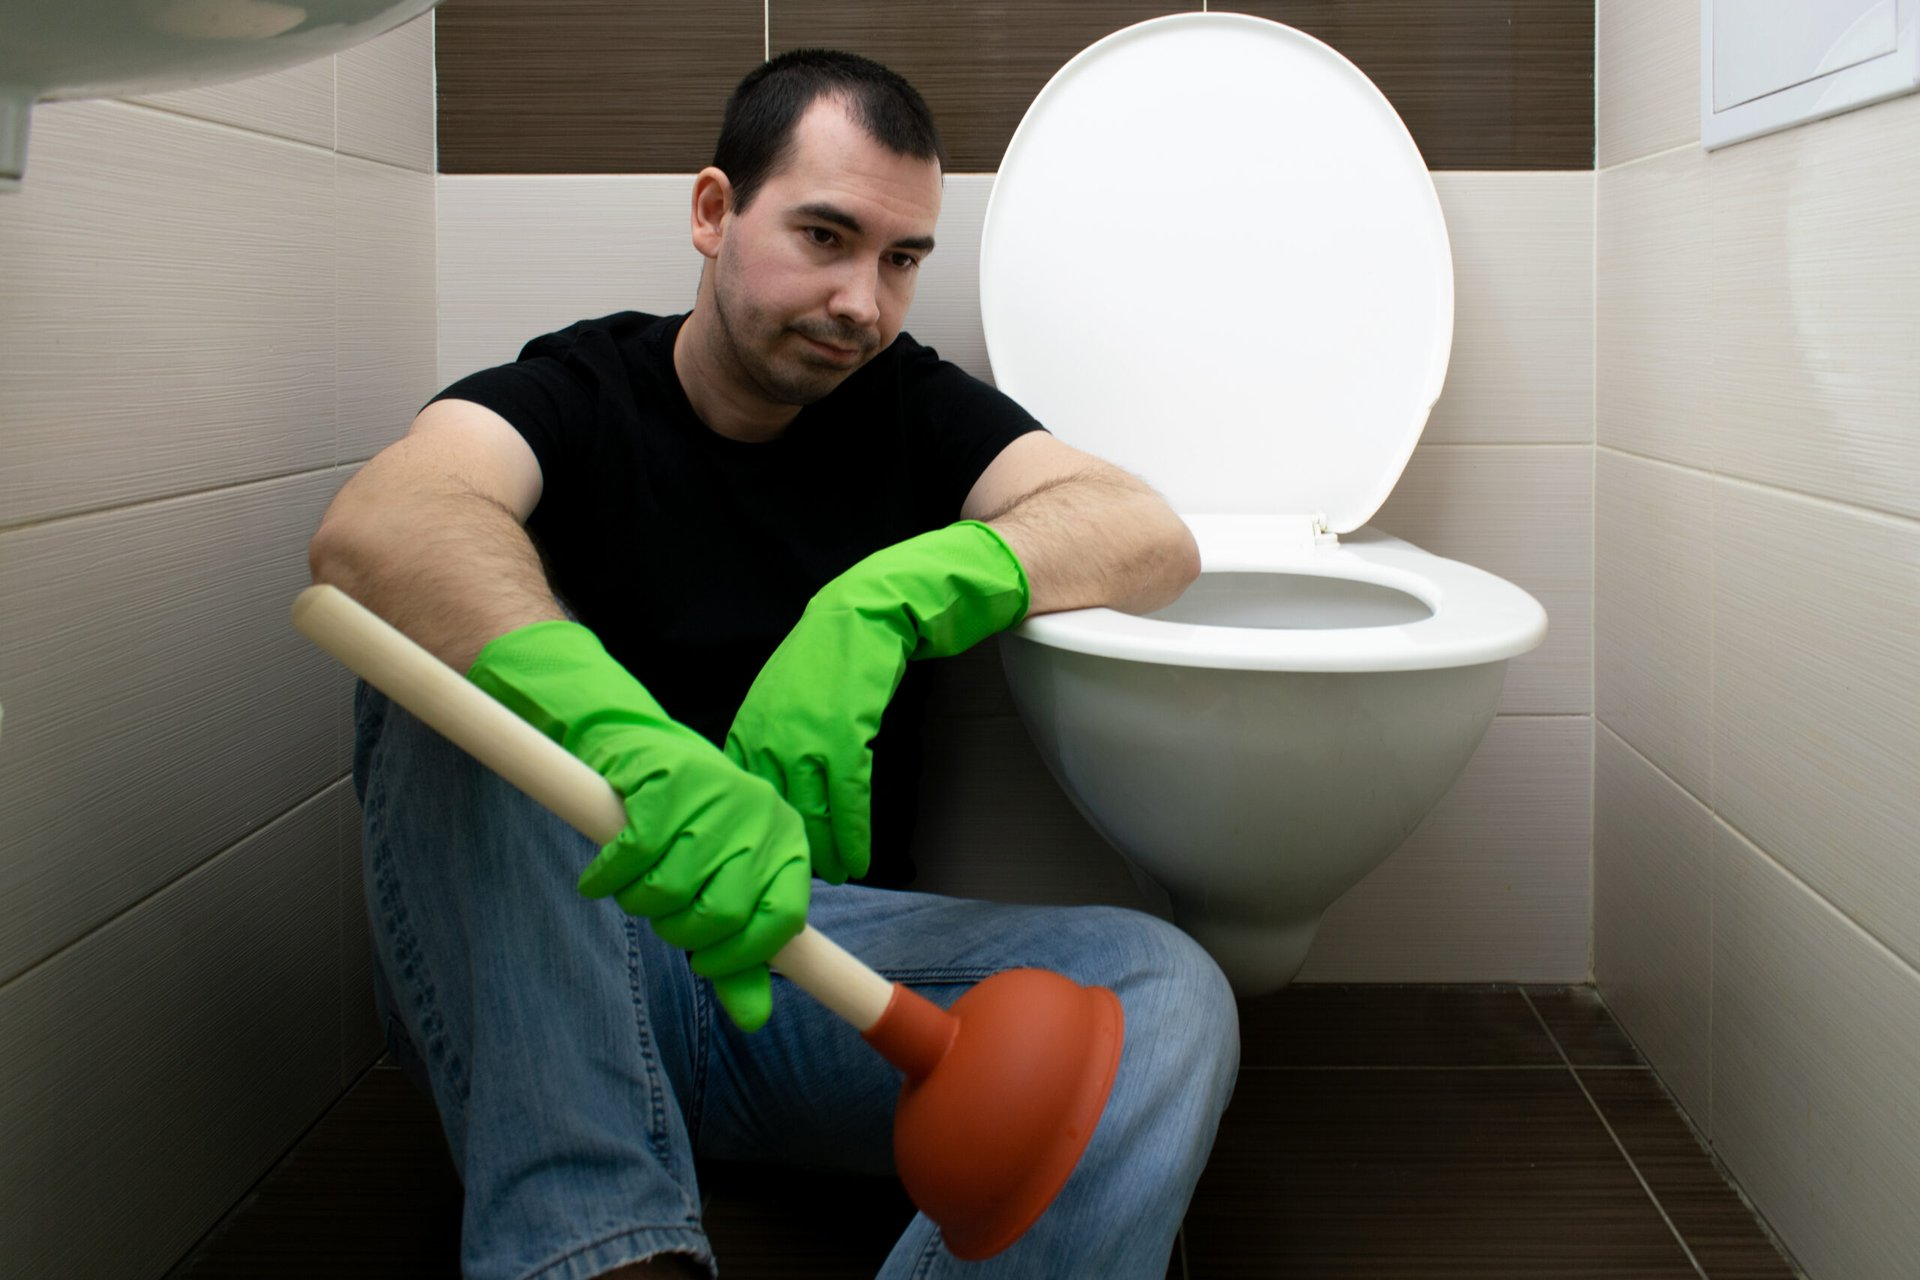 Man with plunger next to toilet